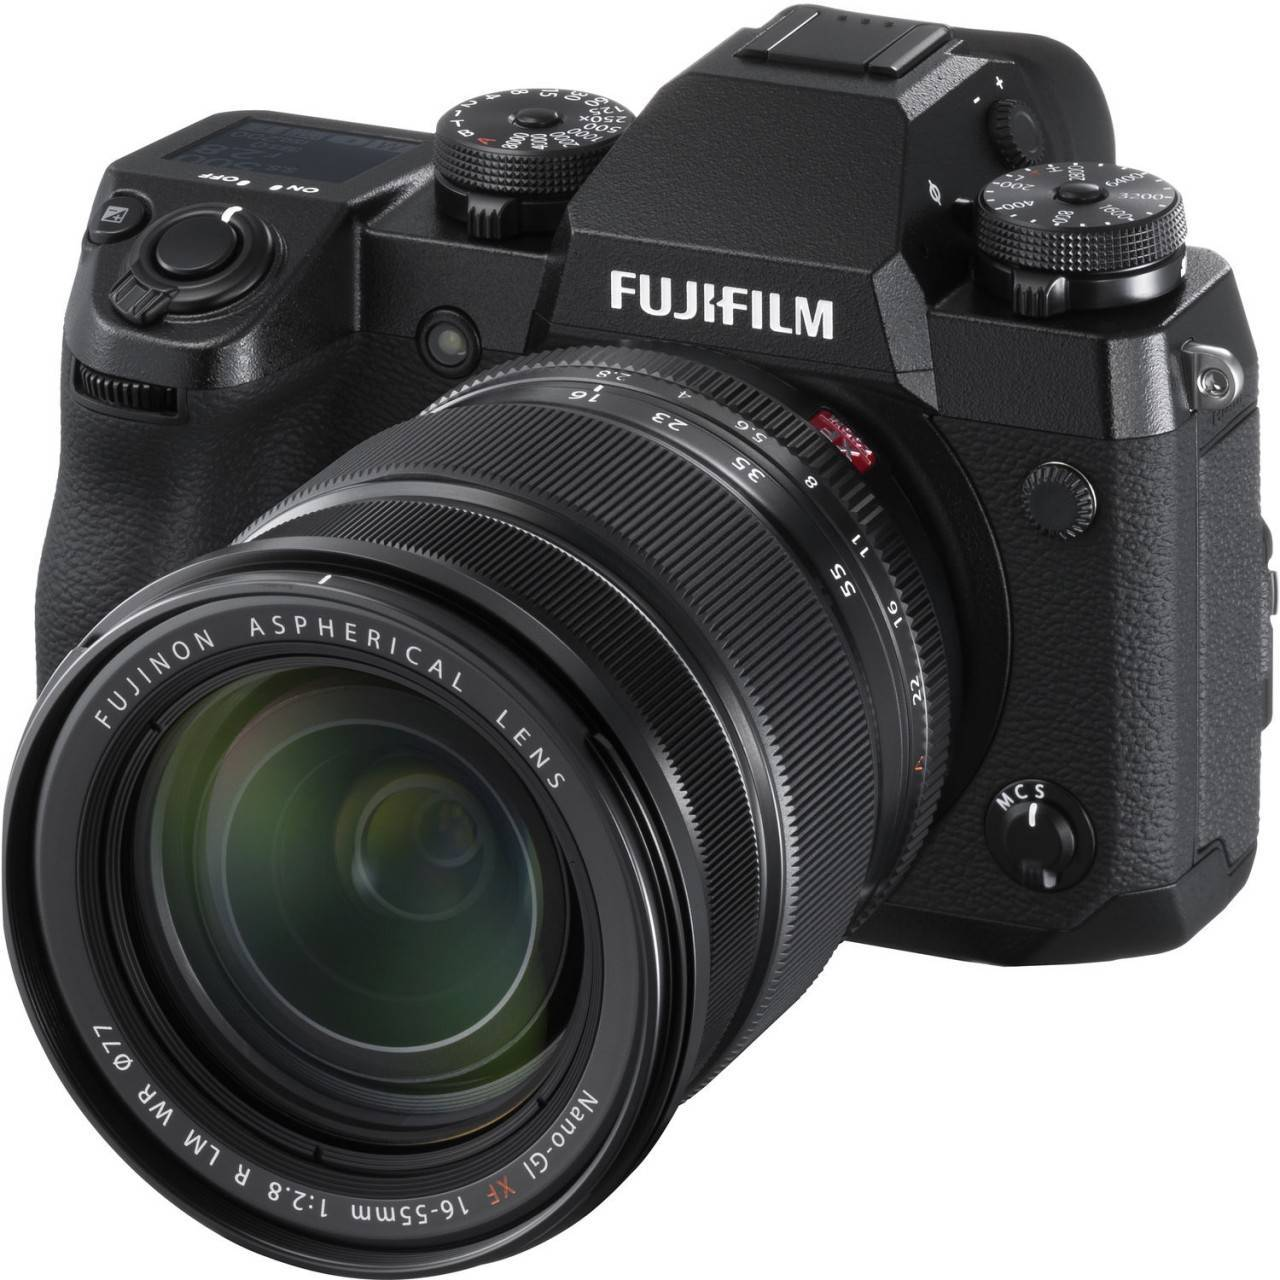 Fujifilm X-H1 Mirrorless Camera with 16-55mm Lens